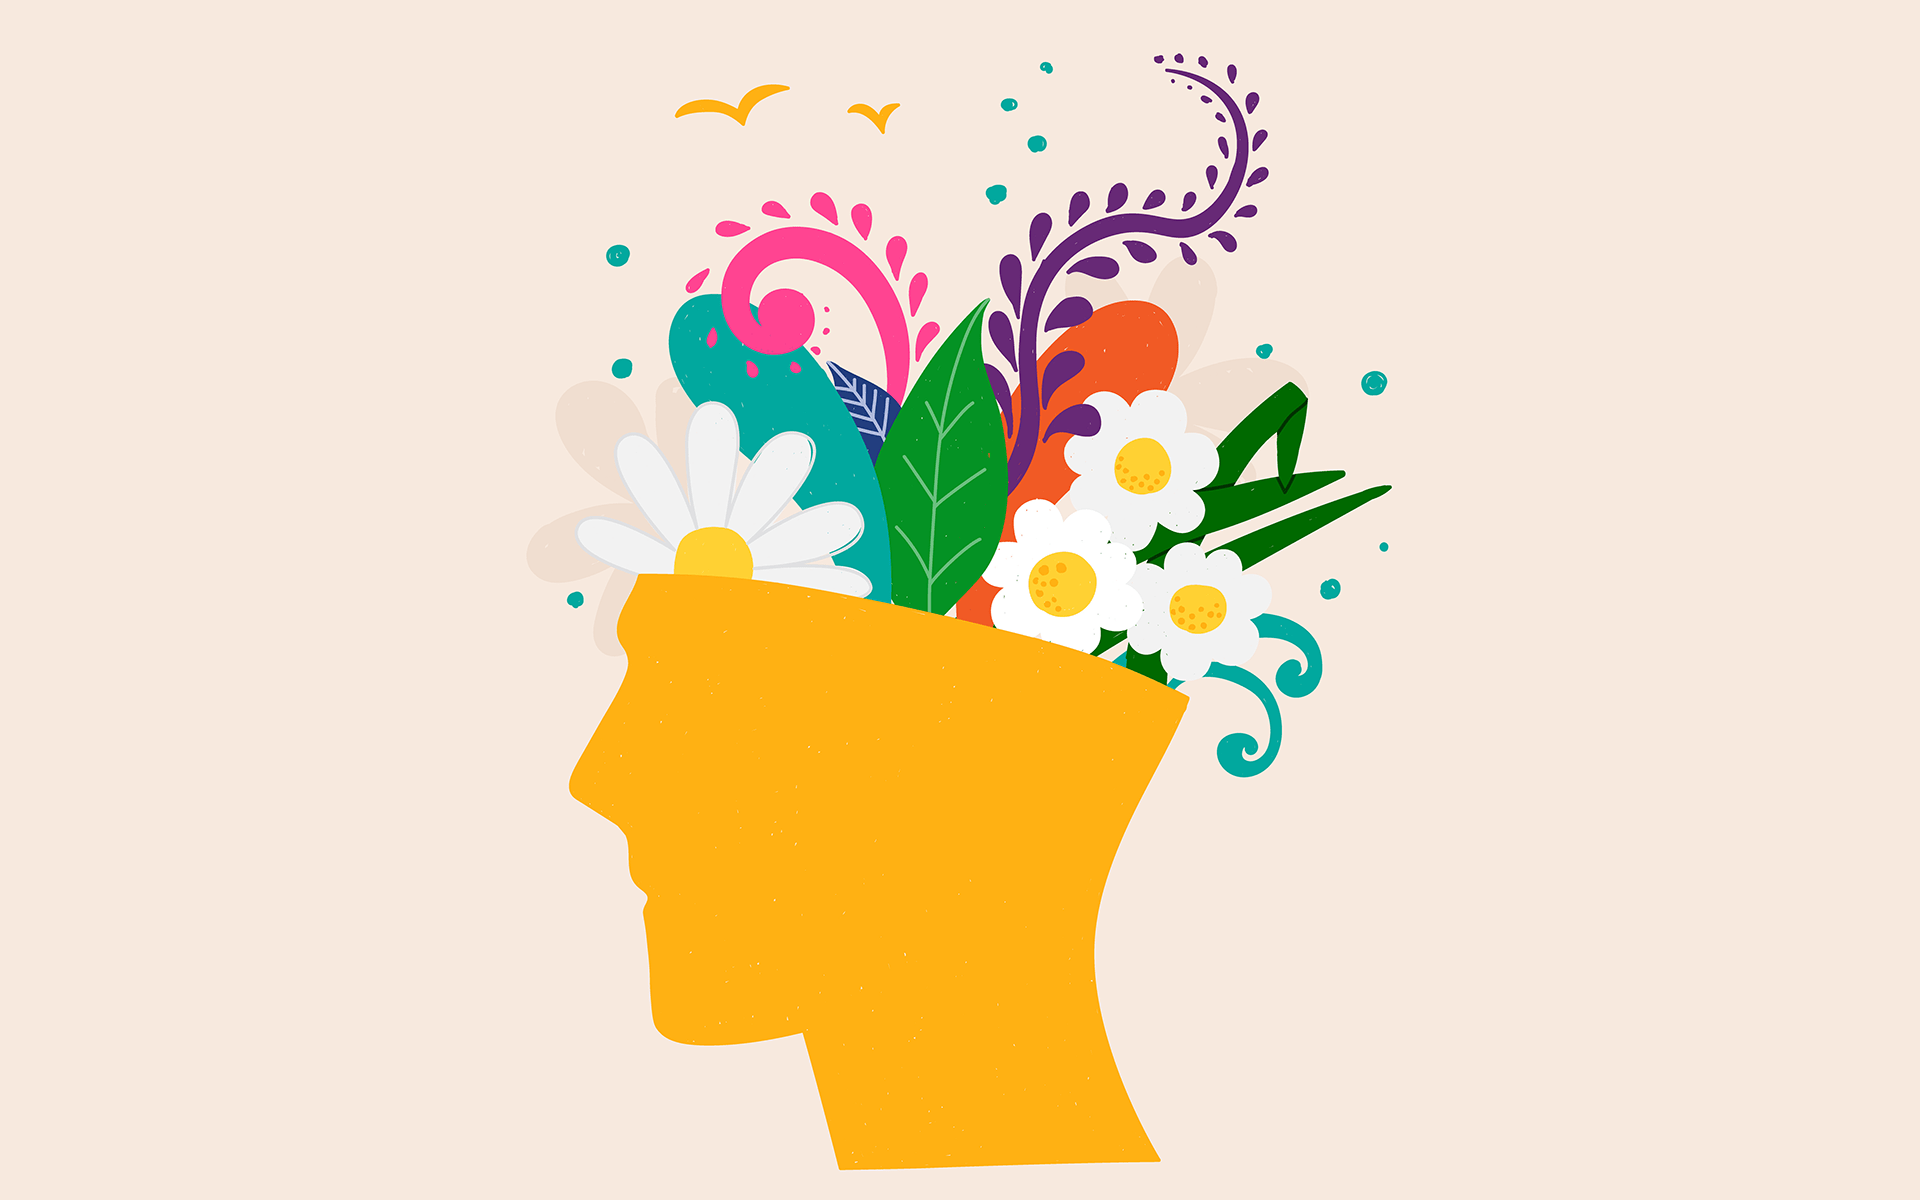 A 2-Minute Practice to Calm Anxiety and Nurture Curiosity - Abstract image of a head with flowers inside